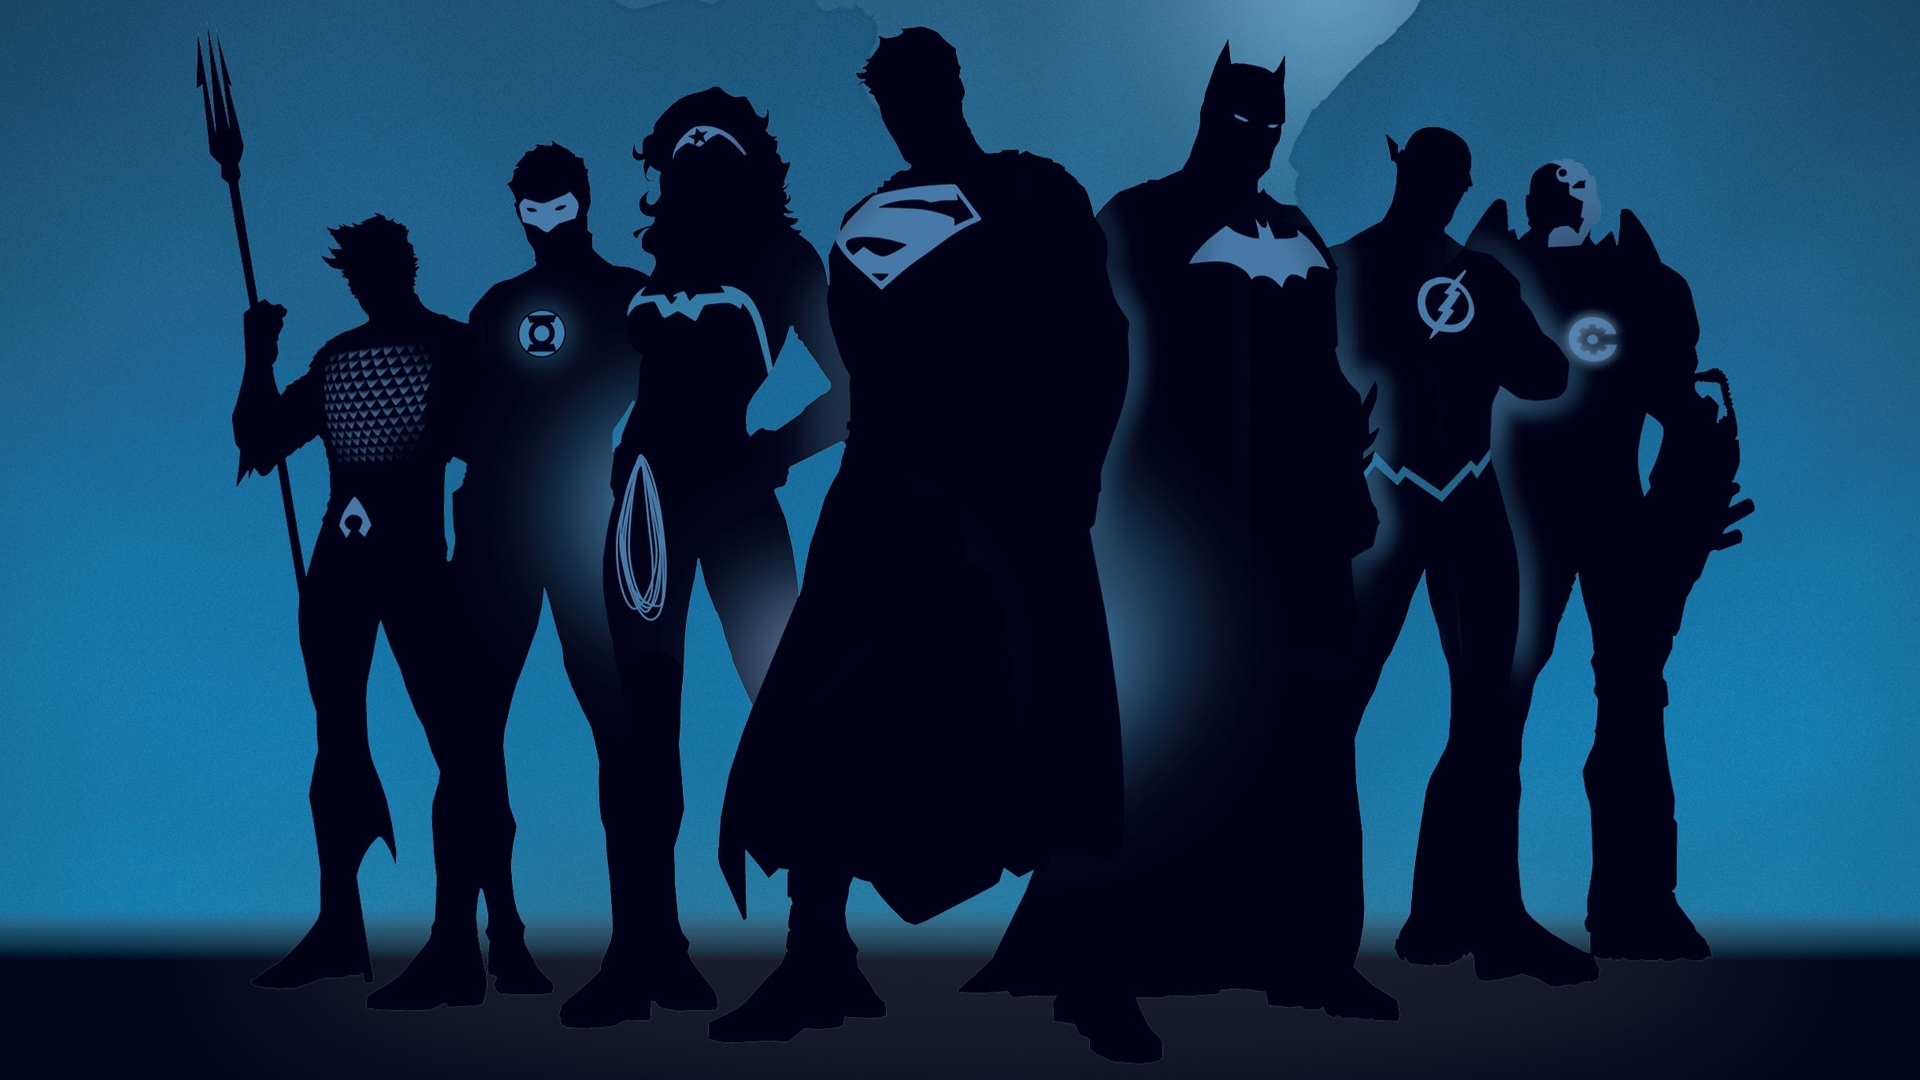 justice league full hd wallpaper and background image   1920x1080